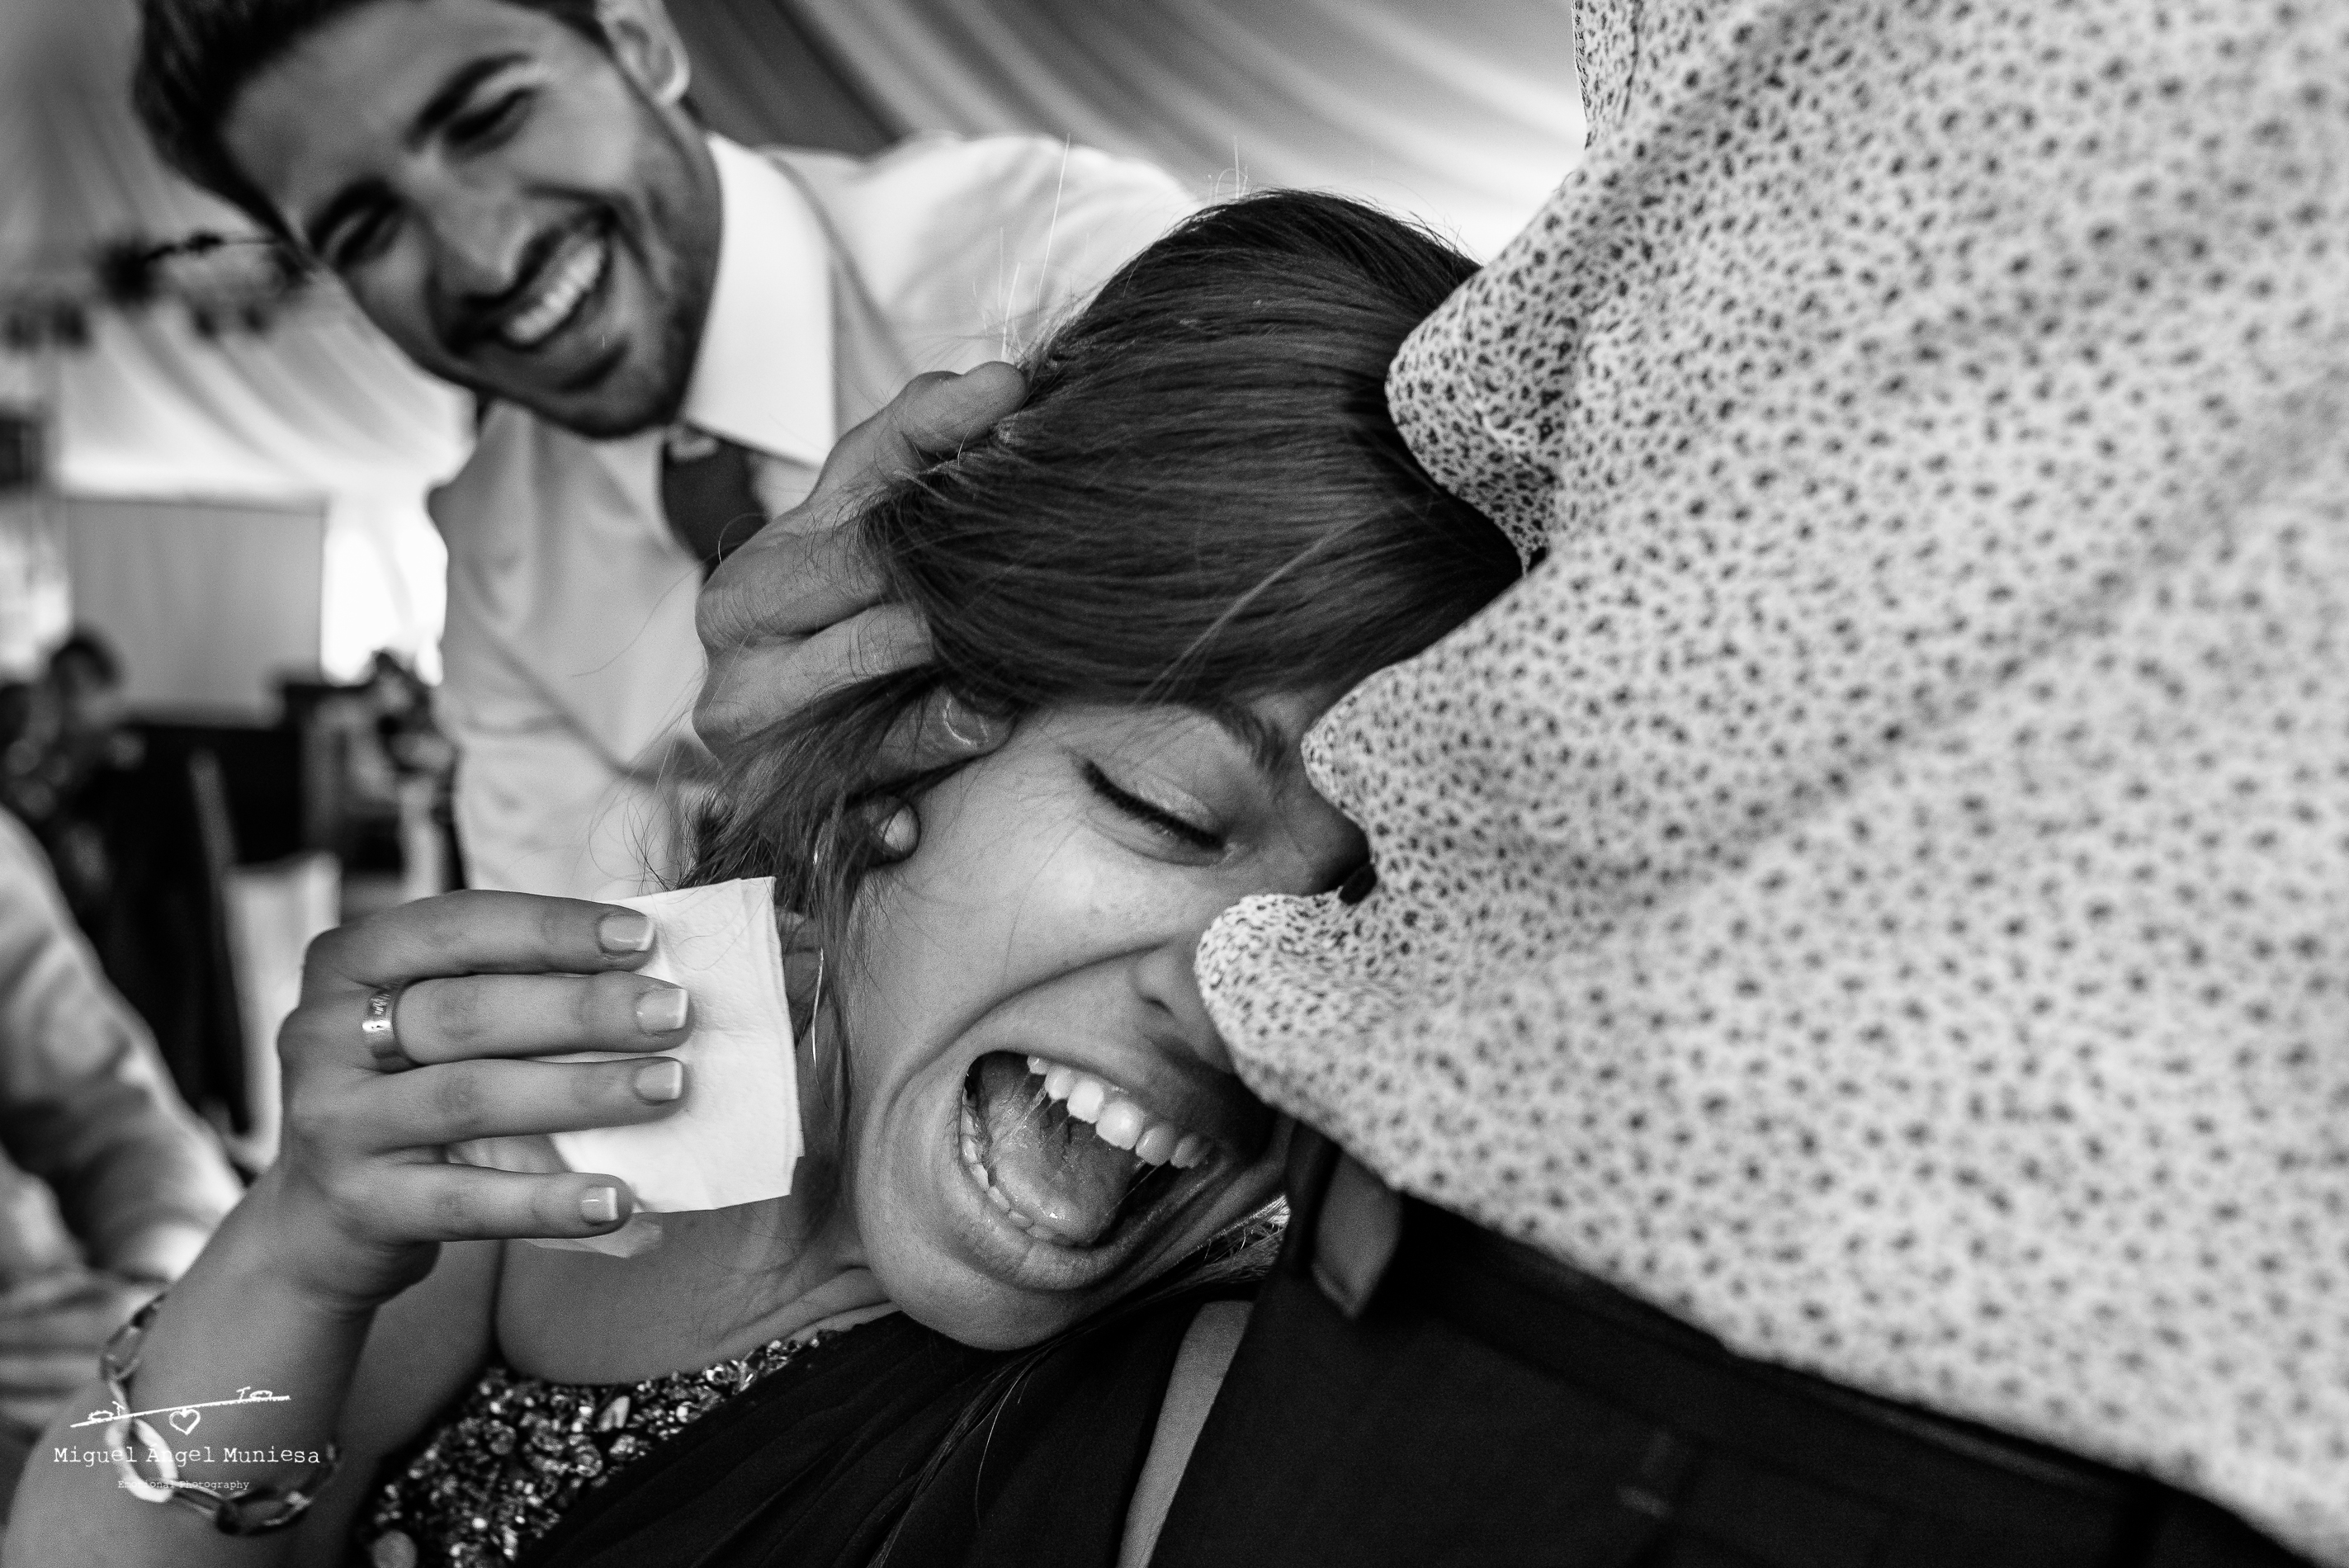 miguel-angel-muniesa-miguel-angel-muniesa_emotional-photography-fotografia-de-boda-11